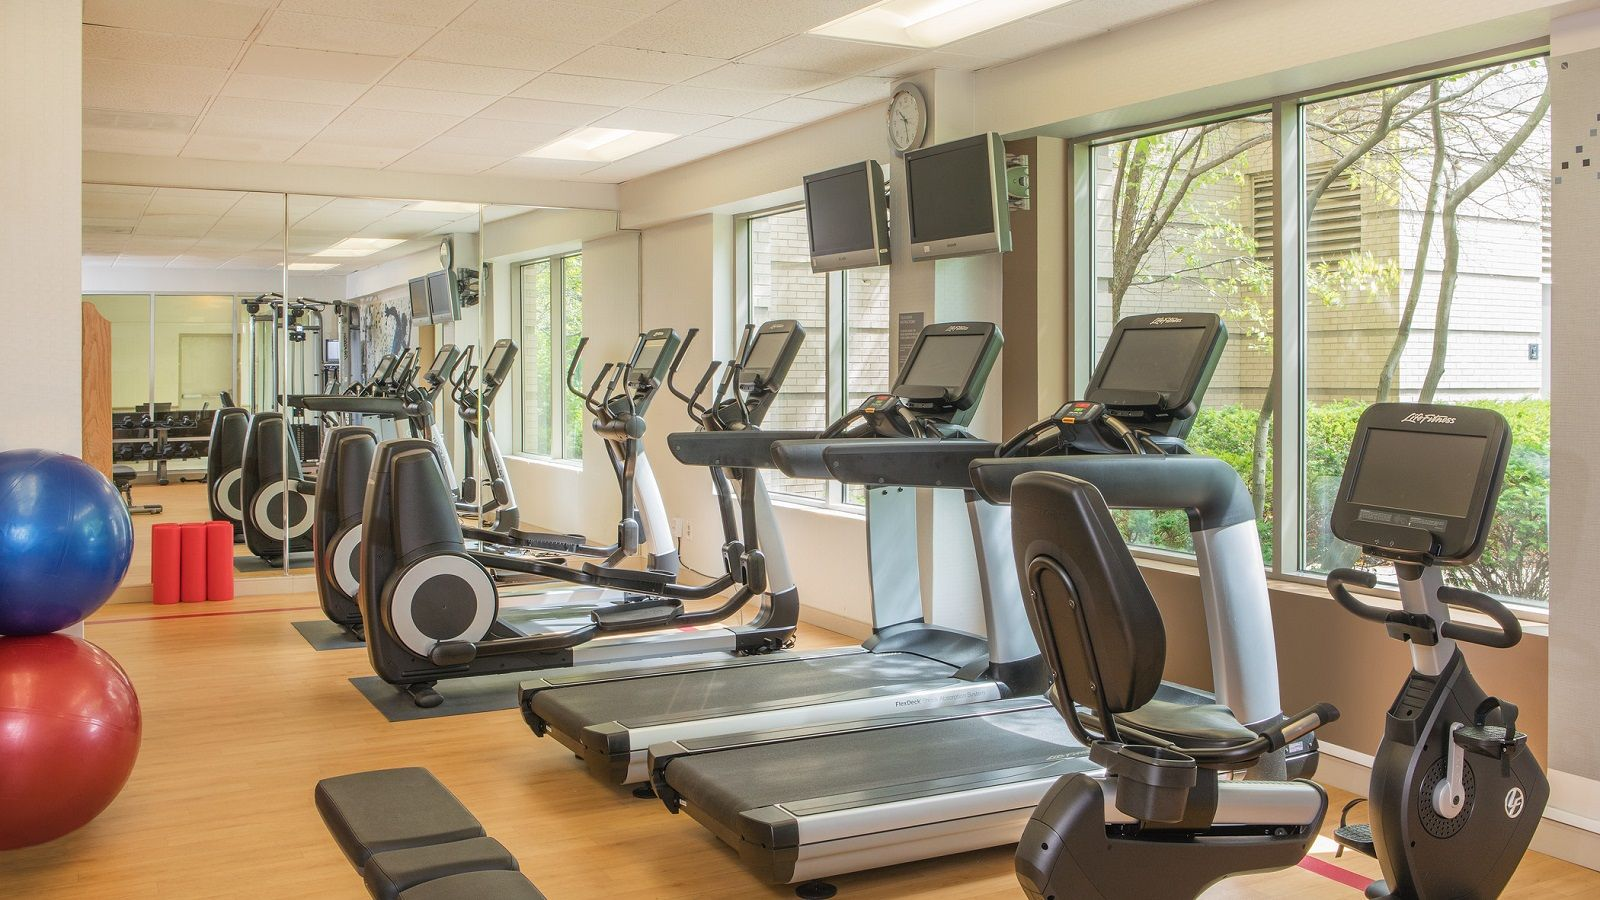 Hotel in Elk Grove - Fitness Center